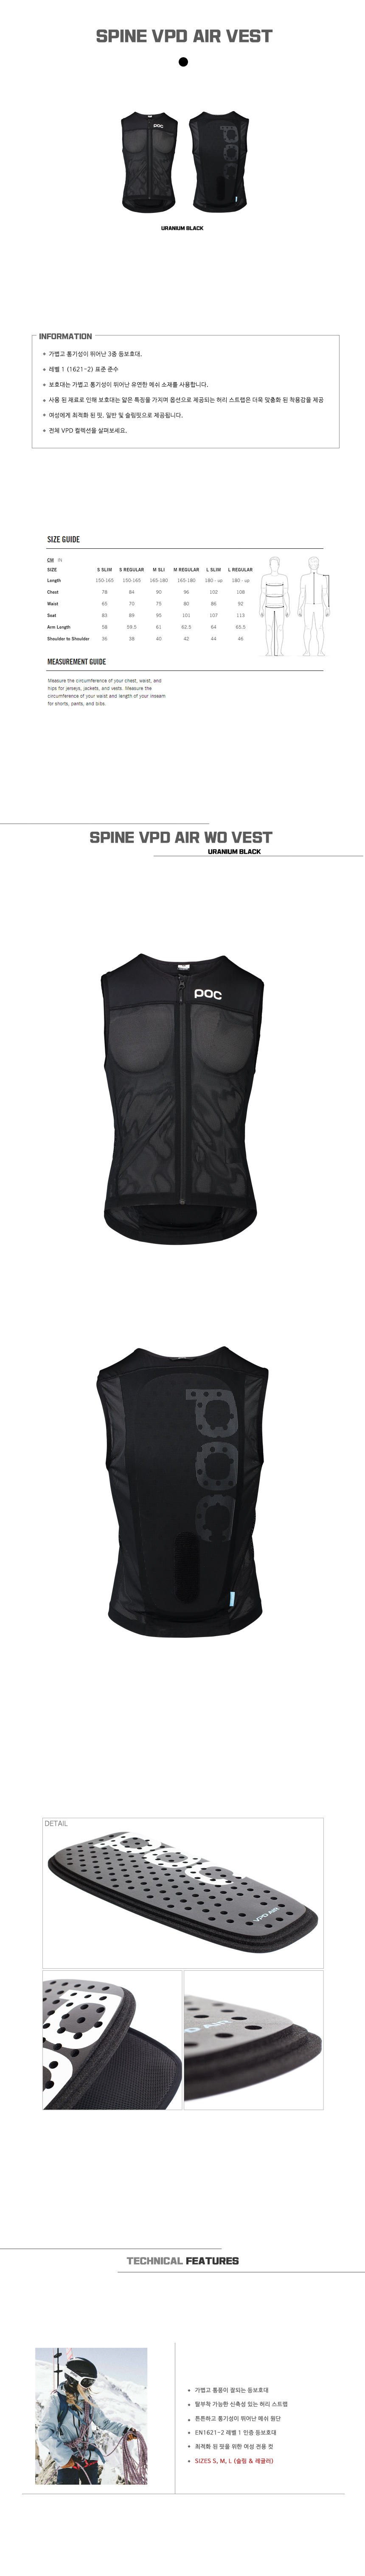 Spine-VPD-air-WO-vest_02.jpg